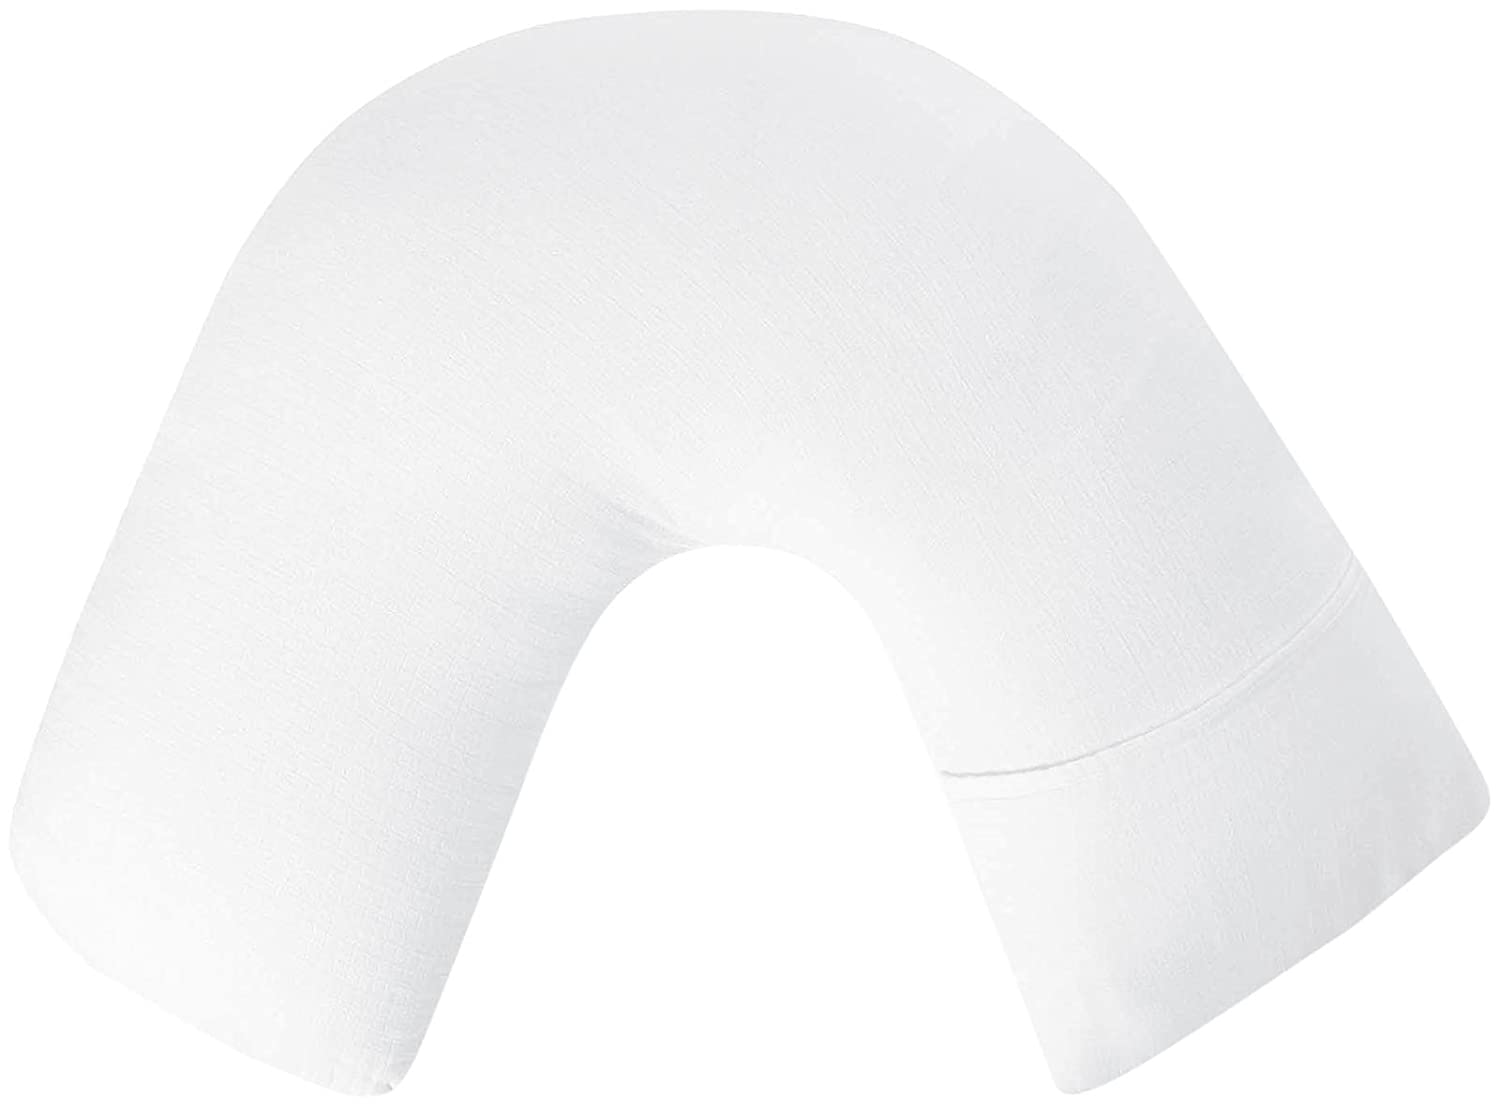 aden by aden + anais nursing pillow cover; darling S873